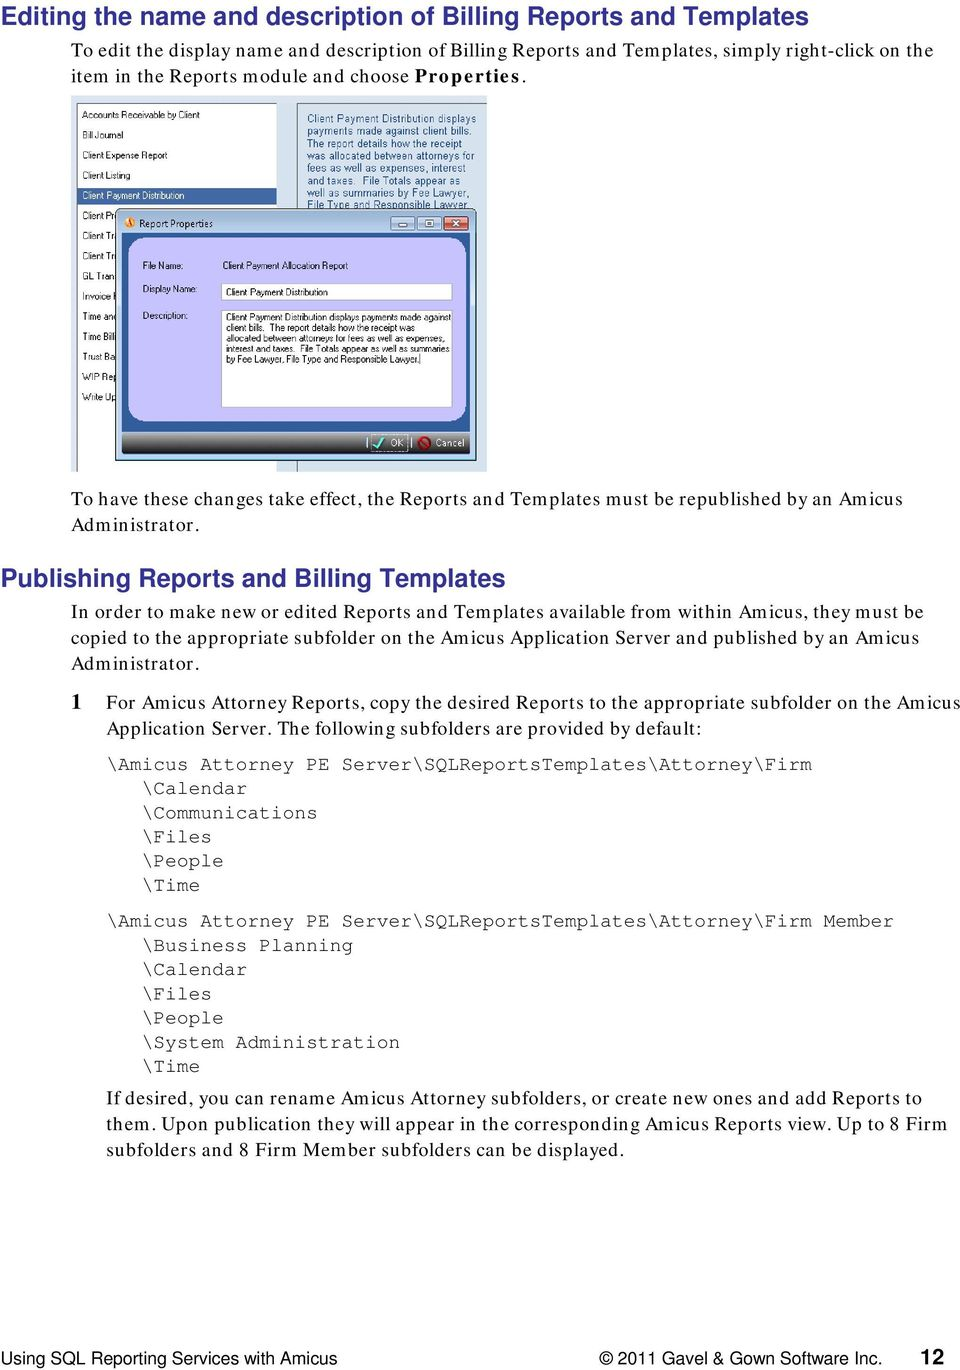 Publishing Reports and Billing Templates In order to make new or edited Reports and Templates available from within Amicus, they must be copied to the appropriate subfolder on the Amicus Application